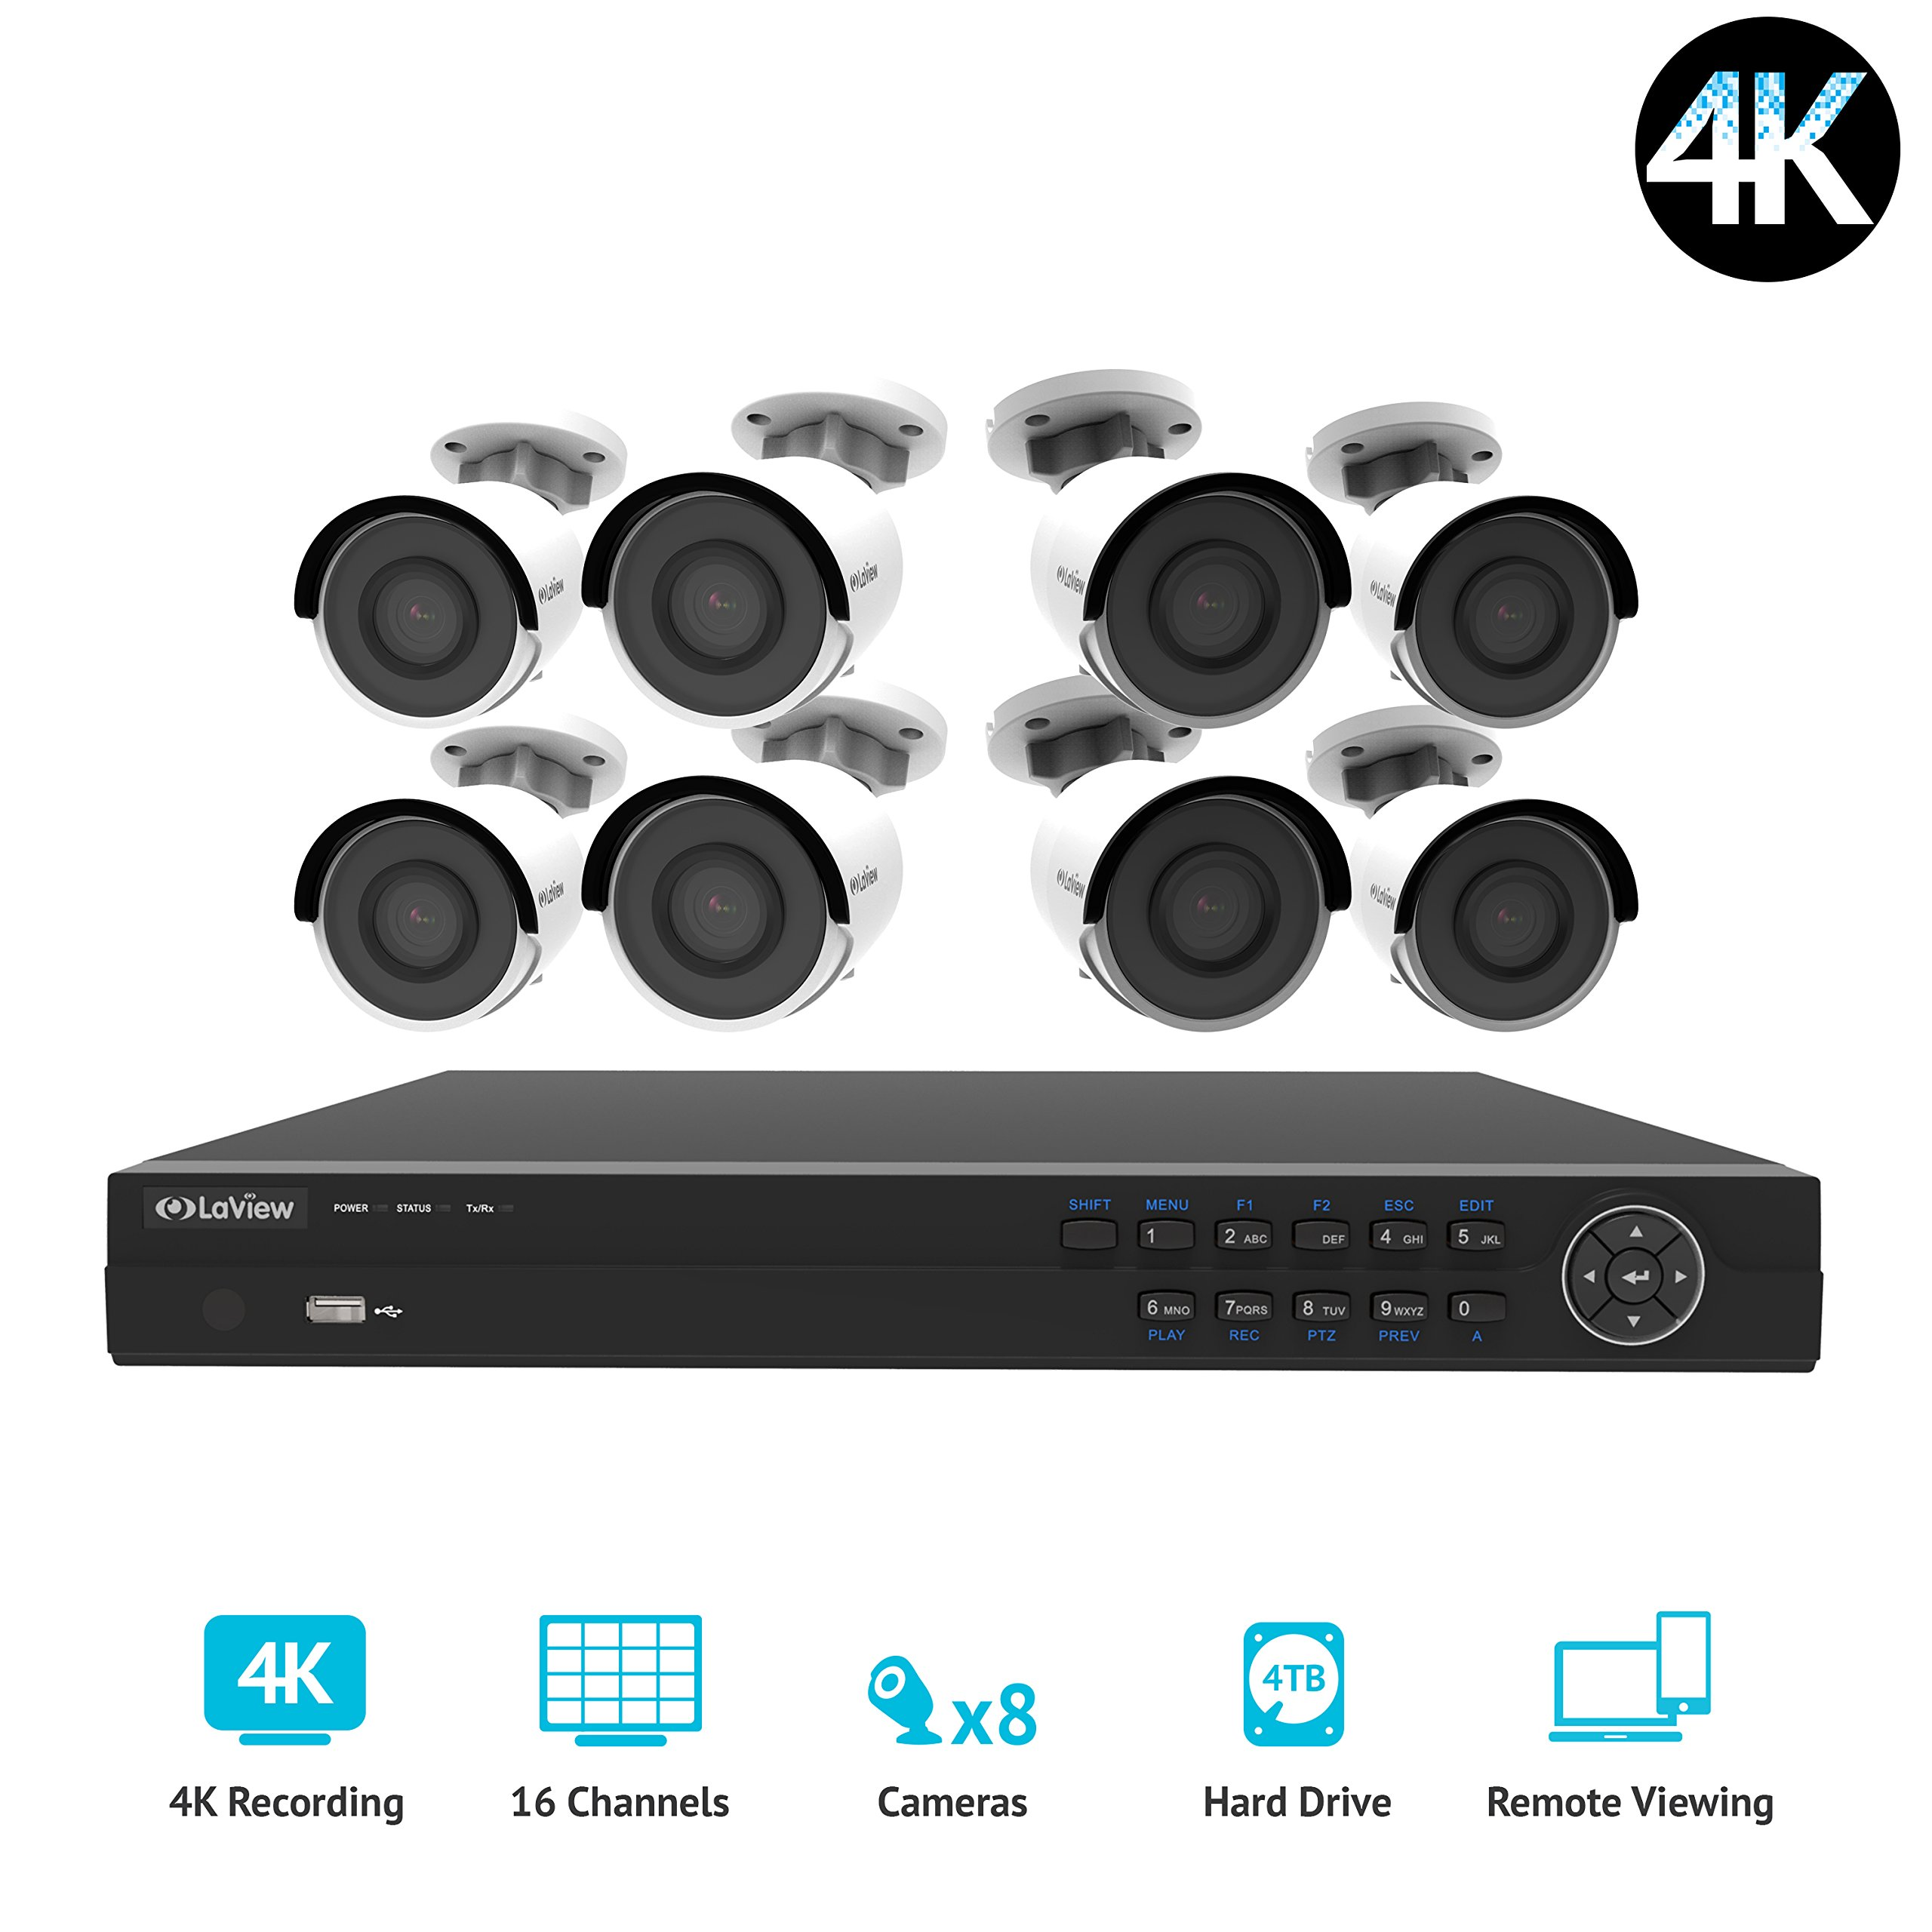 LaView LV-KNG966168G8-T4 16 channel 4K home security 8 8MP 4K Bullet Camera system, 4TB Storage, 100ft Night Vision, White